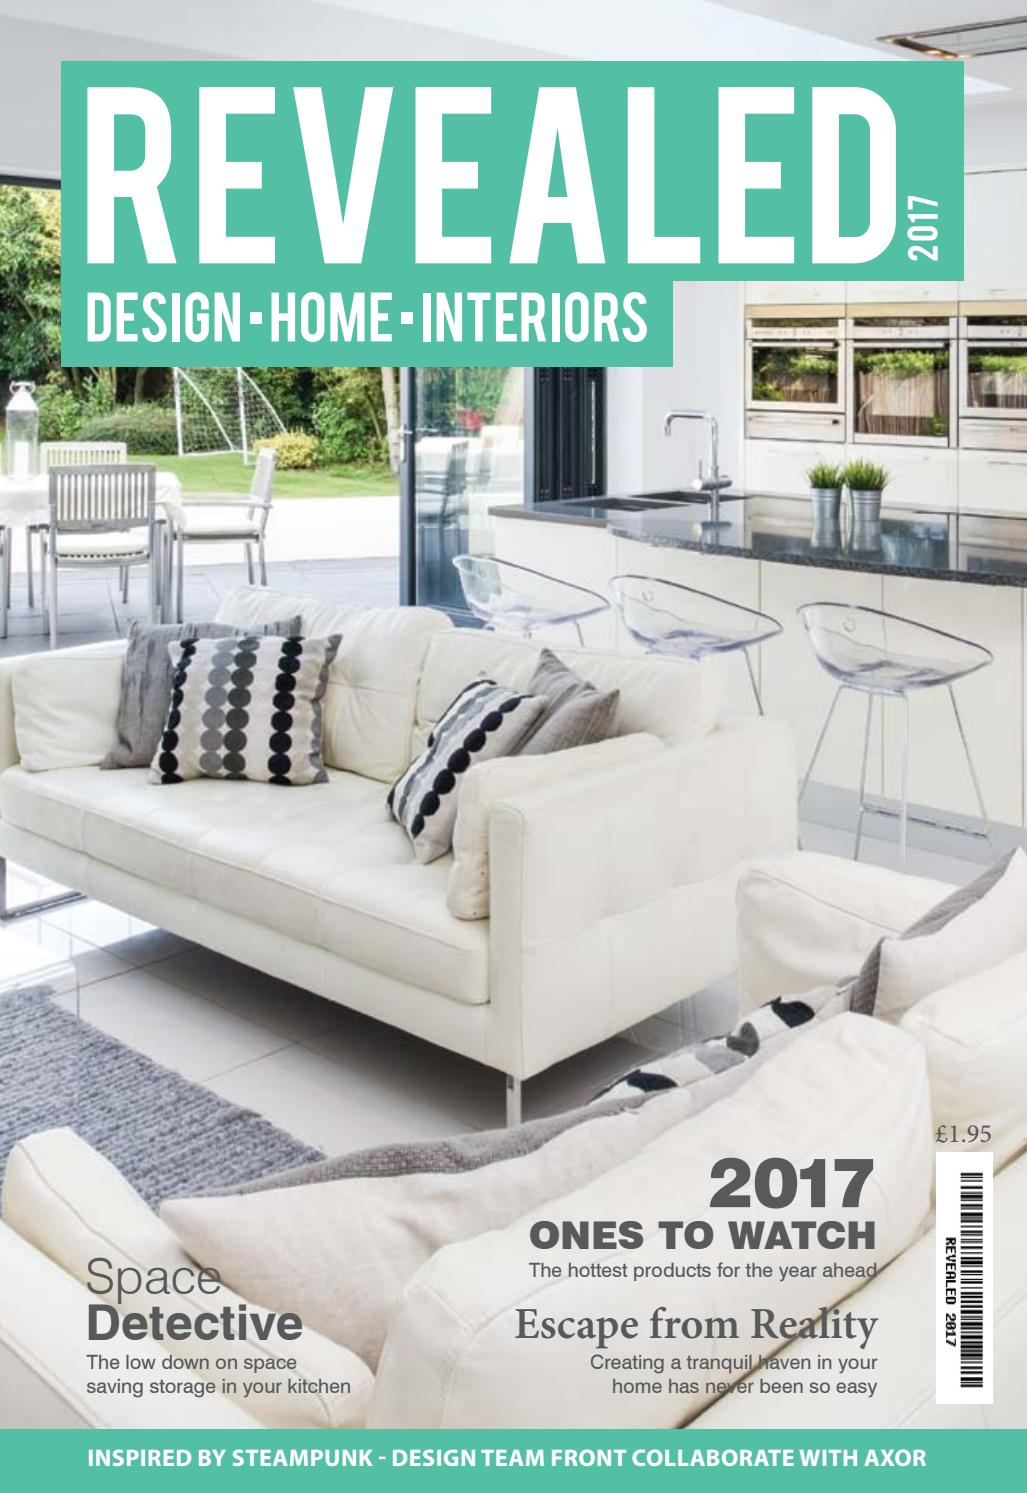 Revealed Design Home Interiors 2017 by Lisa Melvin - issuu